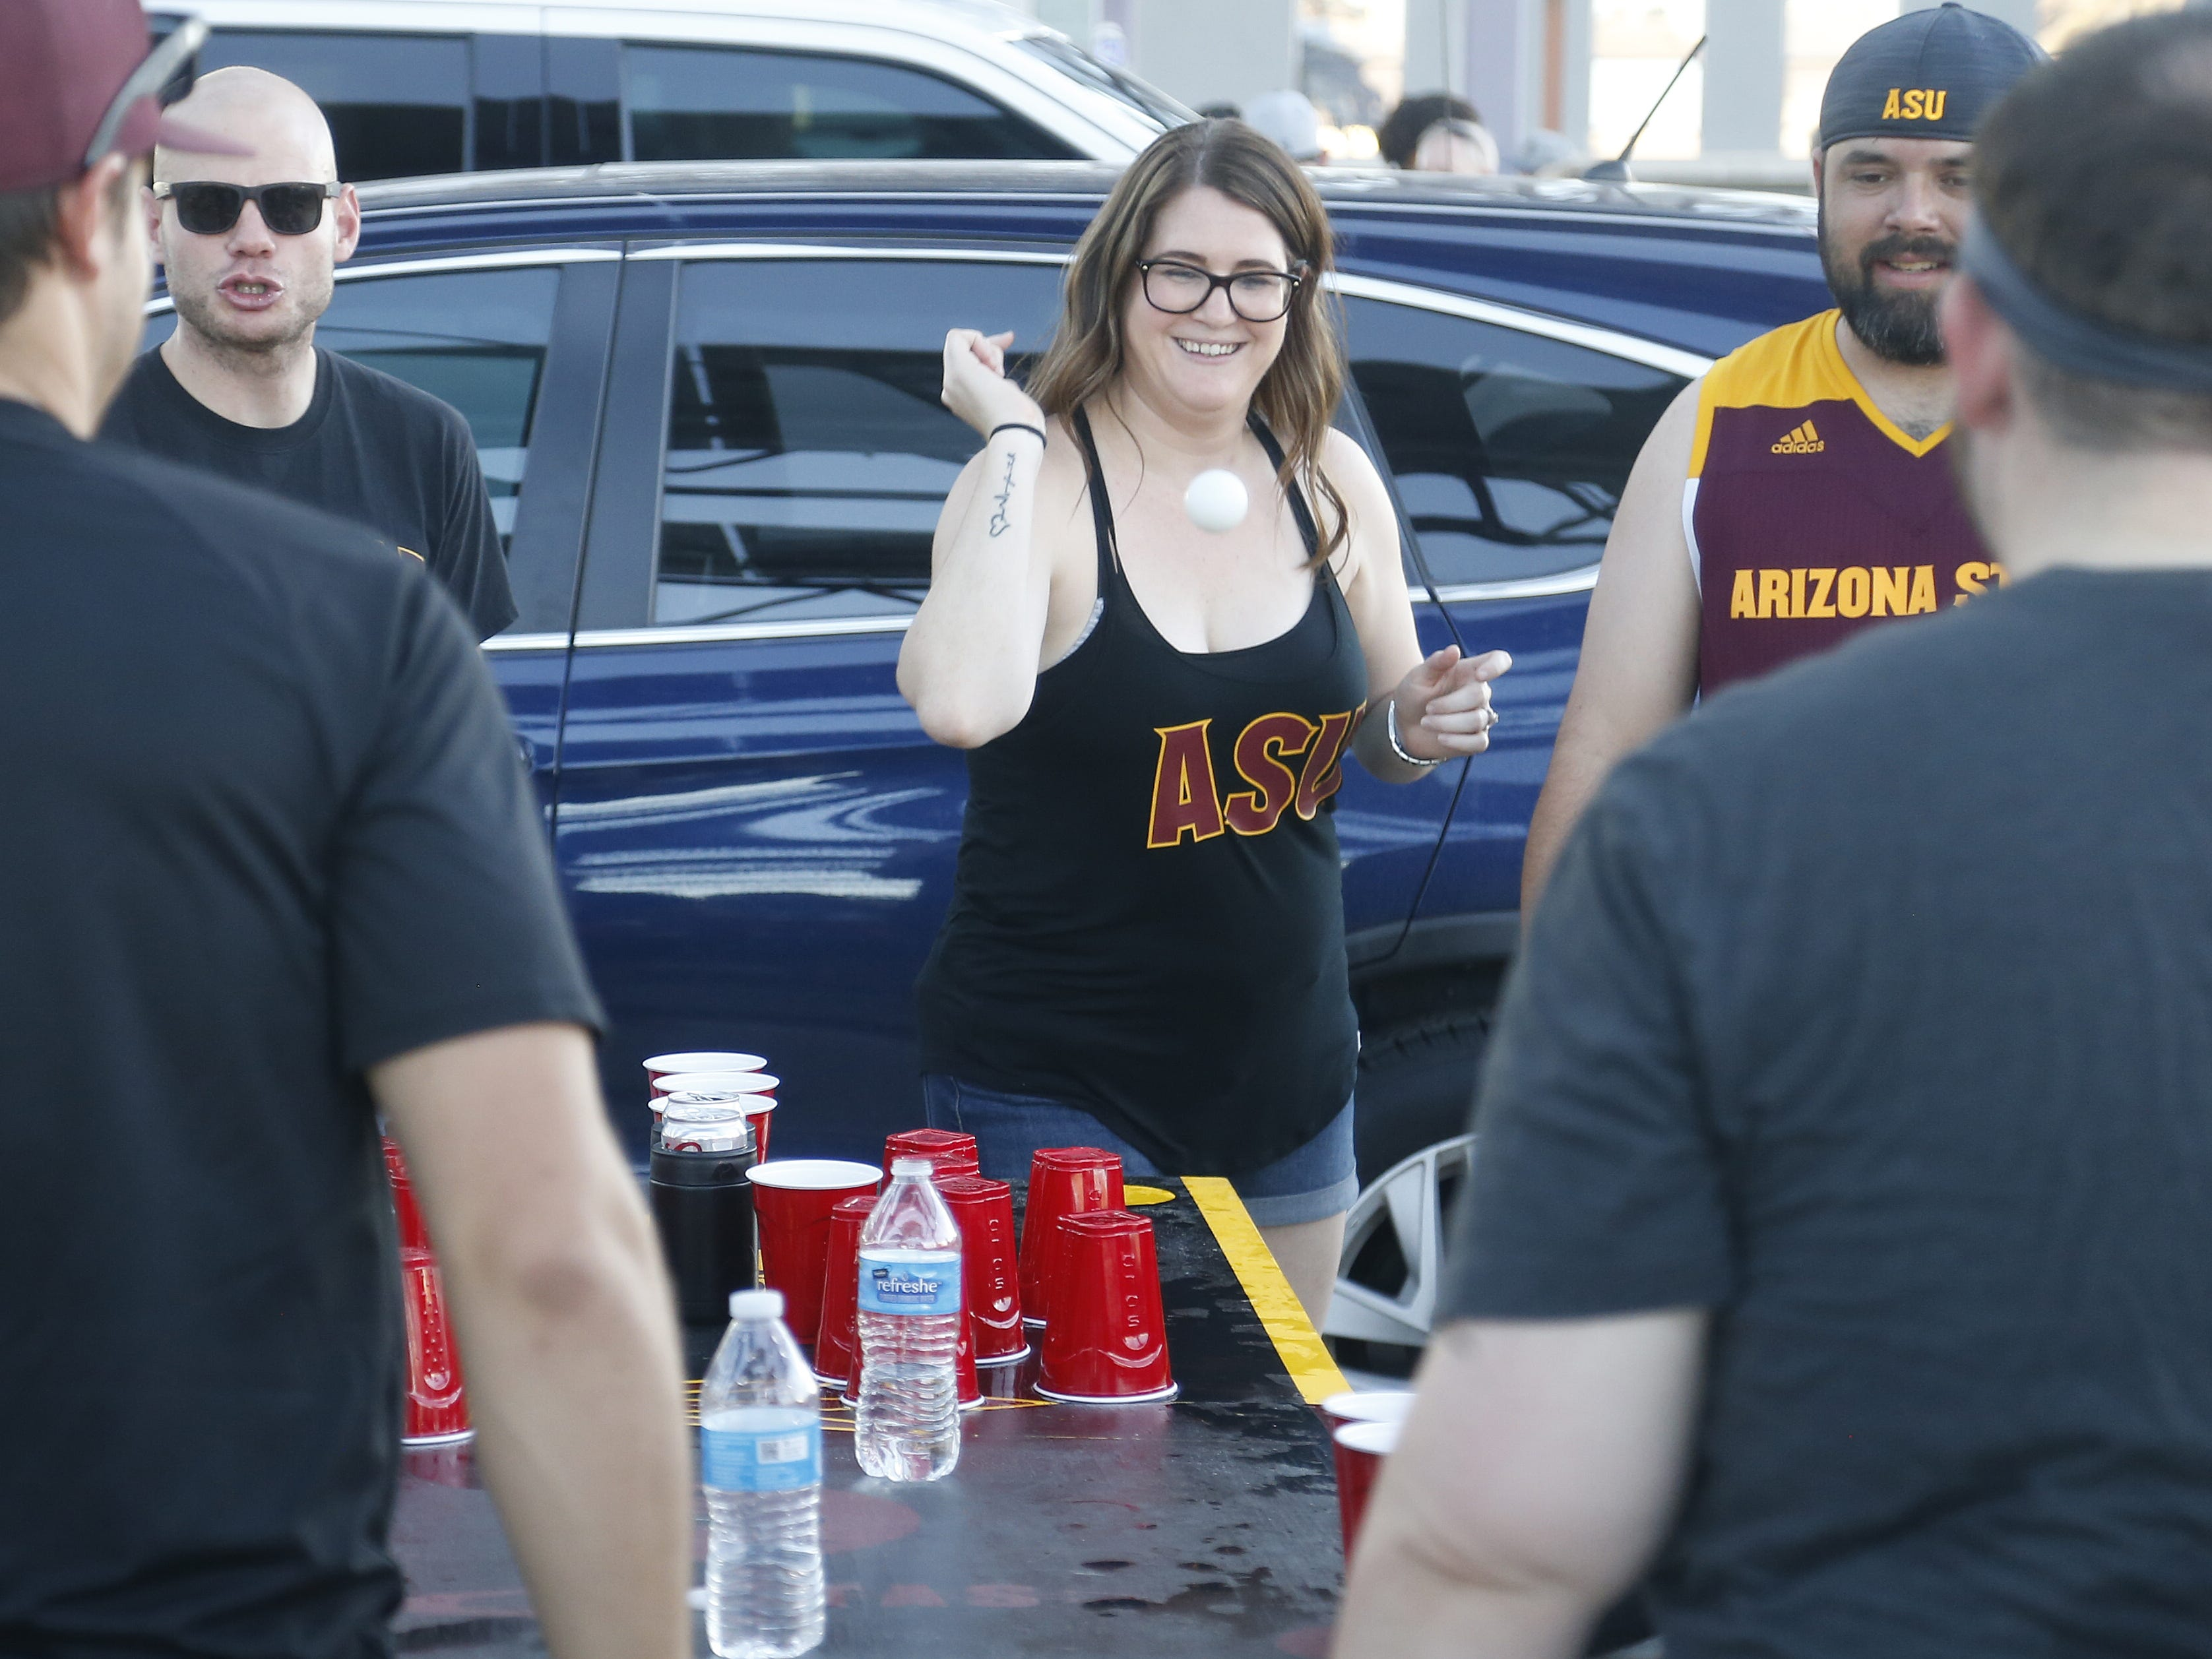 Jen Selleck (R) throws a ping pong ball for their game of flip pong with her friends before an ASU game against Michigan State at Sun Devil Stadium in Tempe, Ariz. on Sept. 8, 2018.